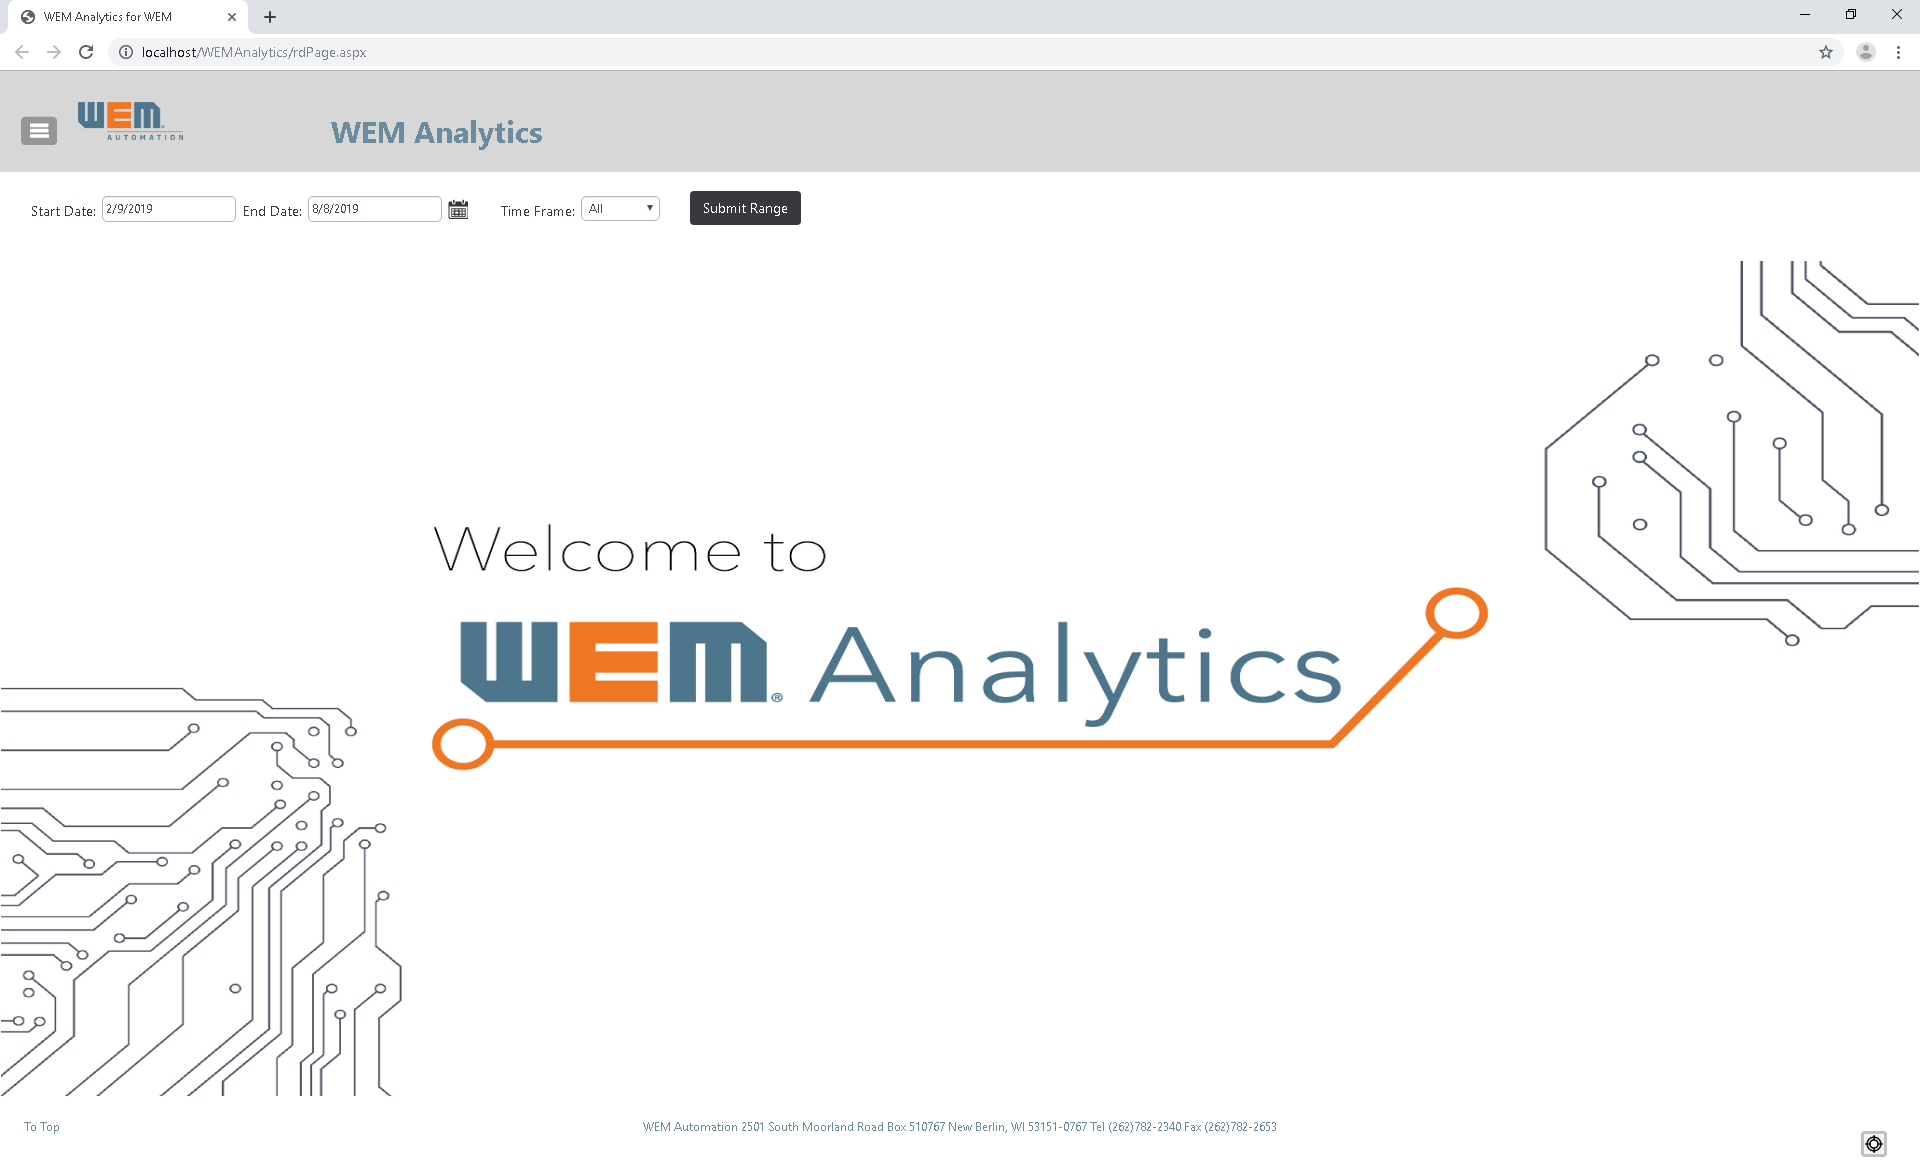 WEM Analytics